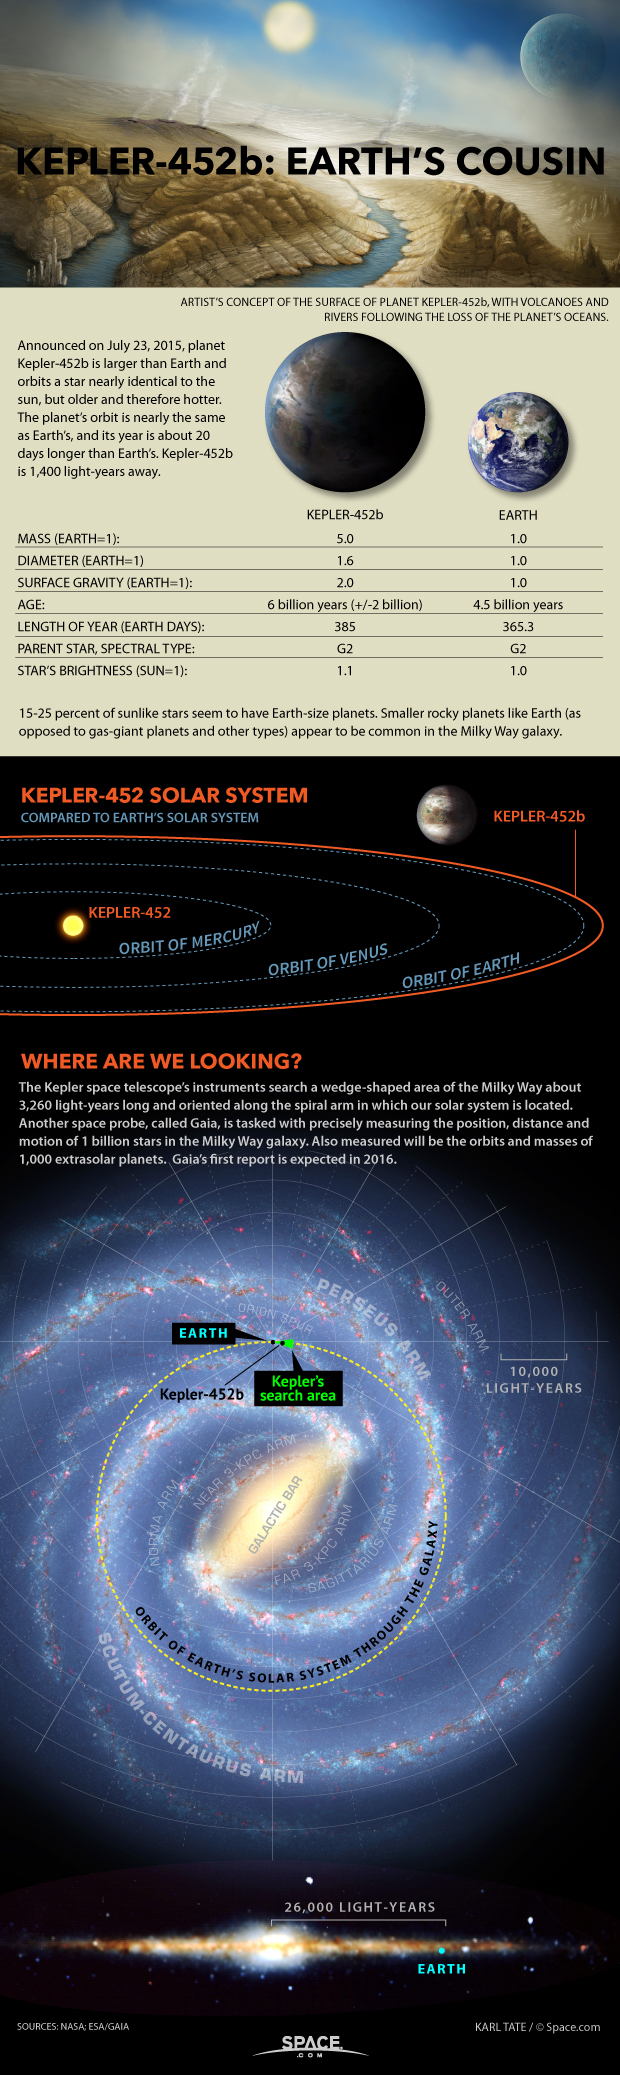 Earth's Cousin Found: All About Exoplanet Kepler-452b (Infographic)